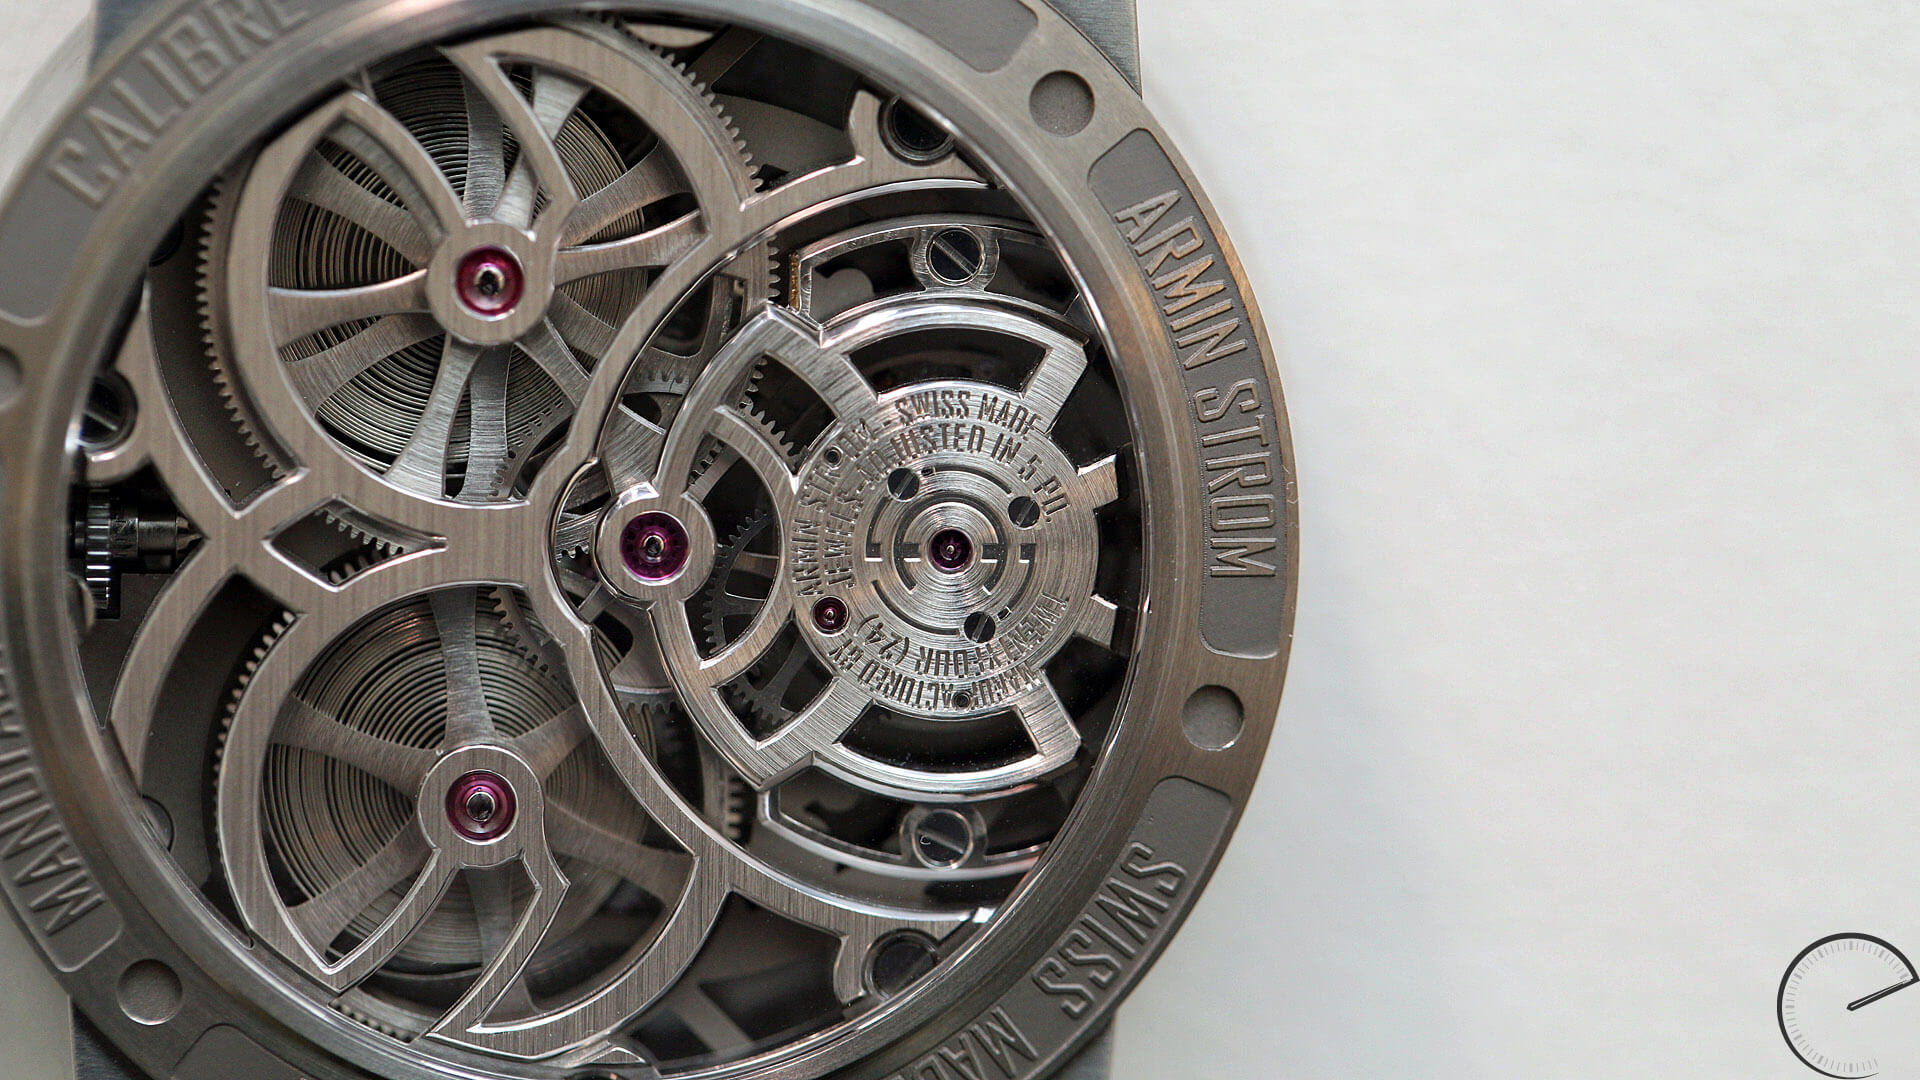 Armin_Strom_Tourbillon_Skeleton_Air_caseback - - ESCAPEMENT magazine - watch reviews for purists by Angus Davies